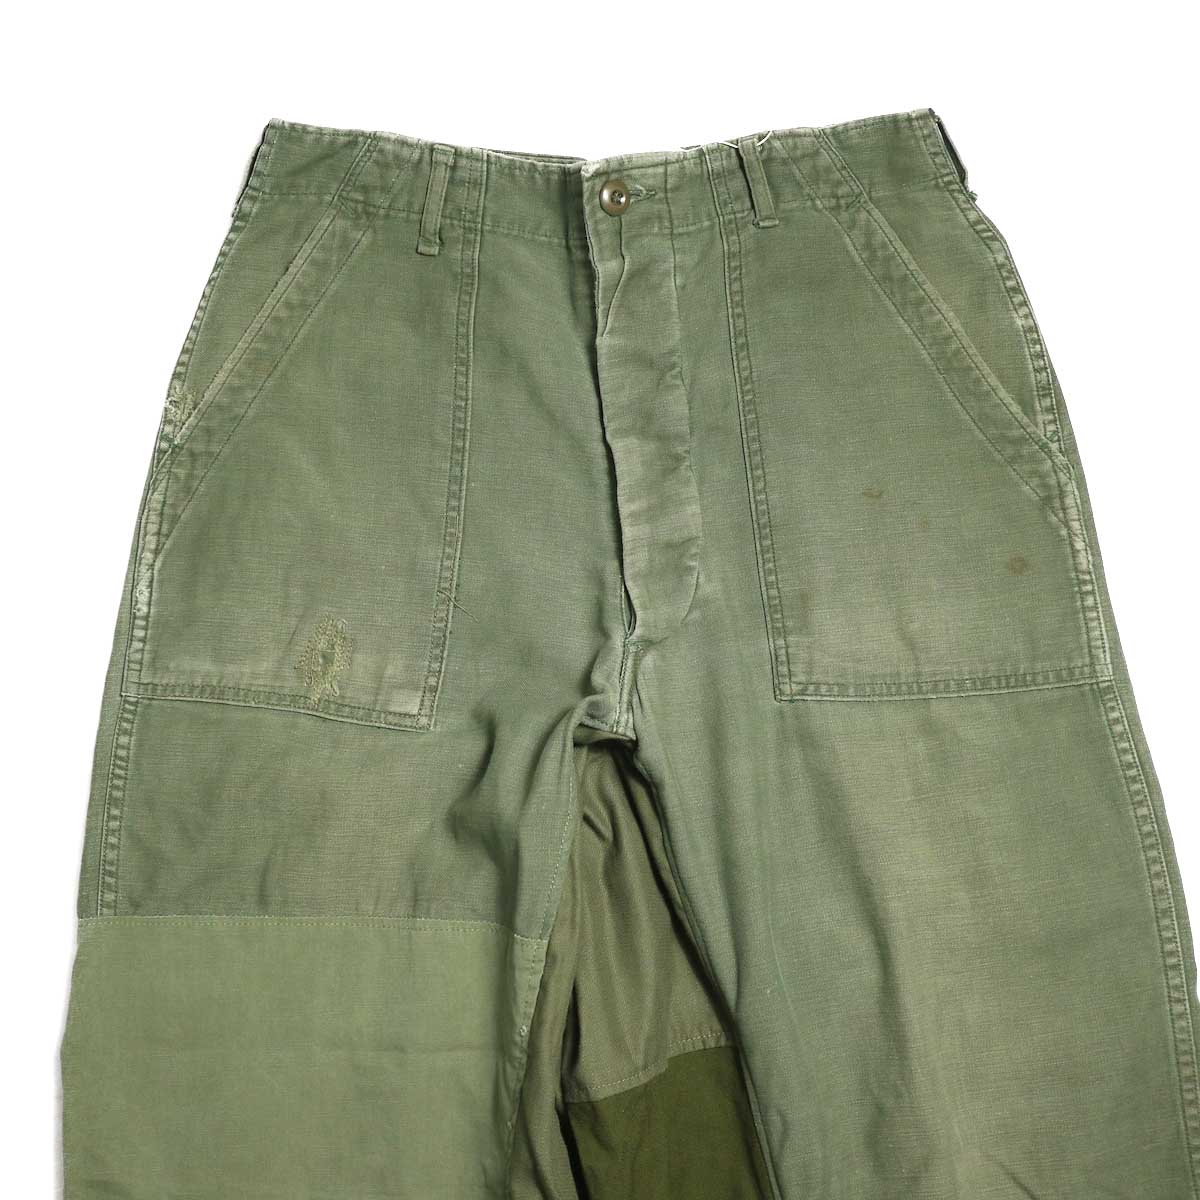 BONUM / Military FAT Pants (typeC) 正面 股上